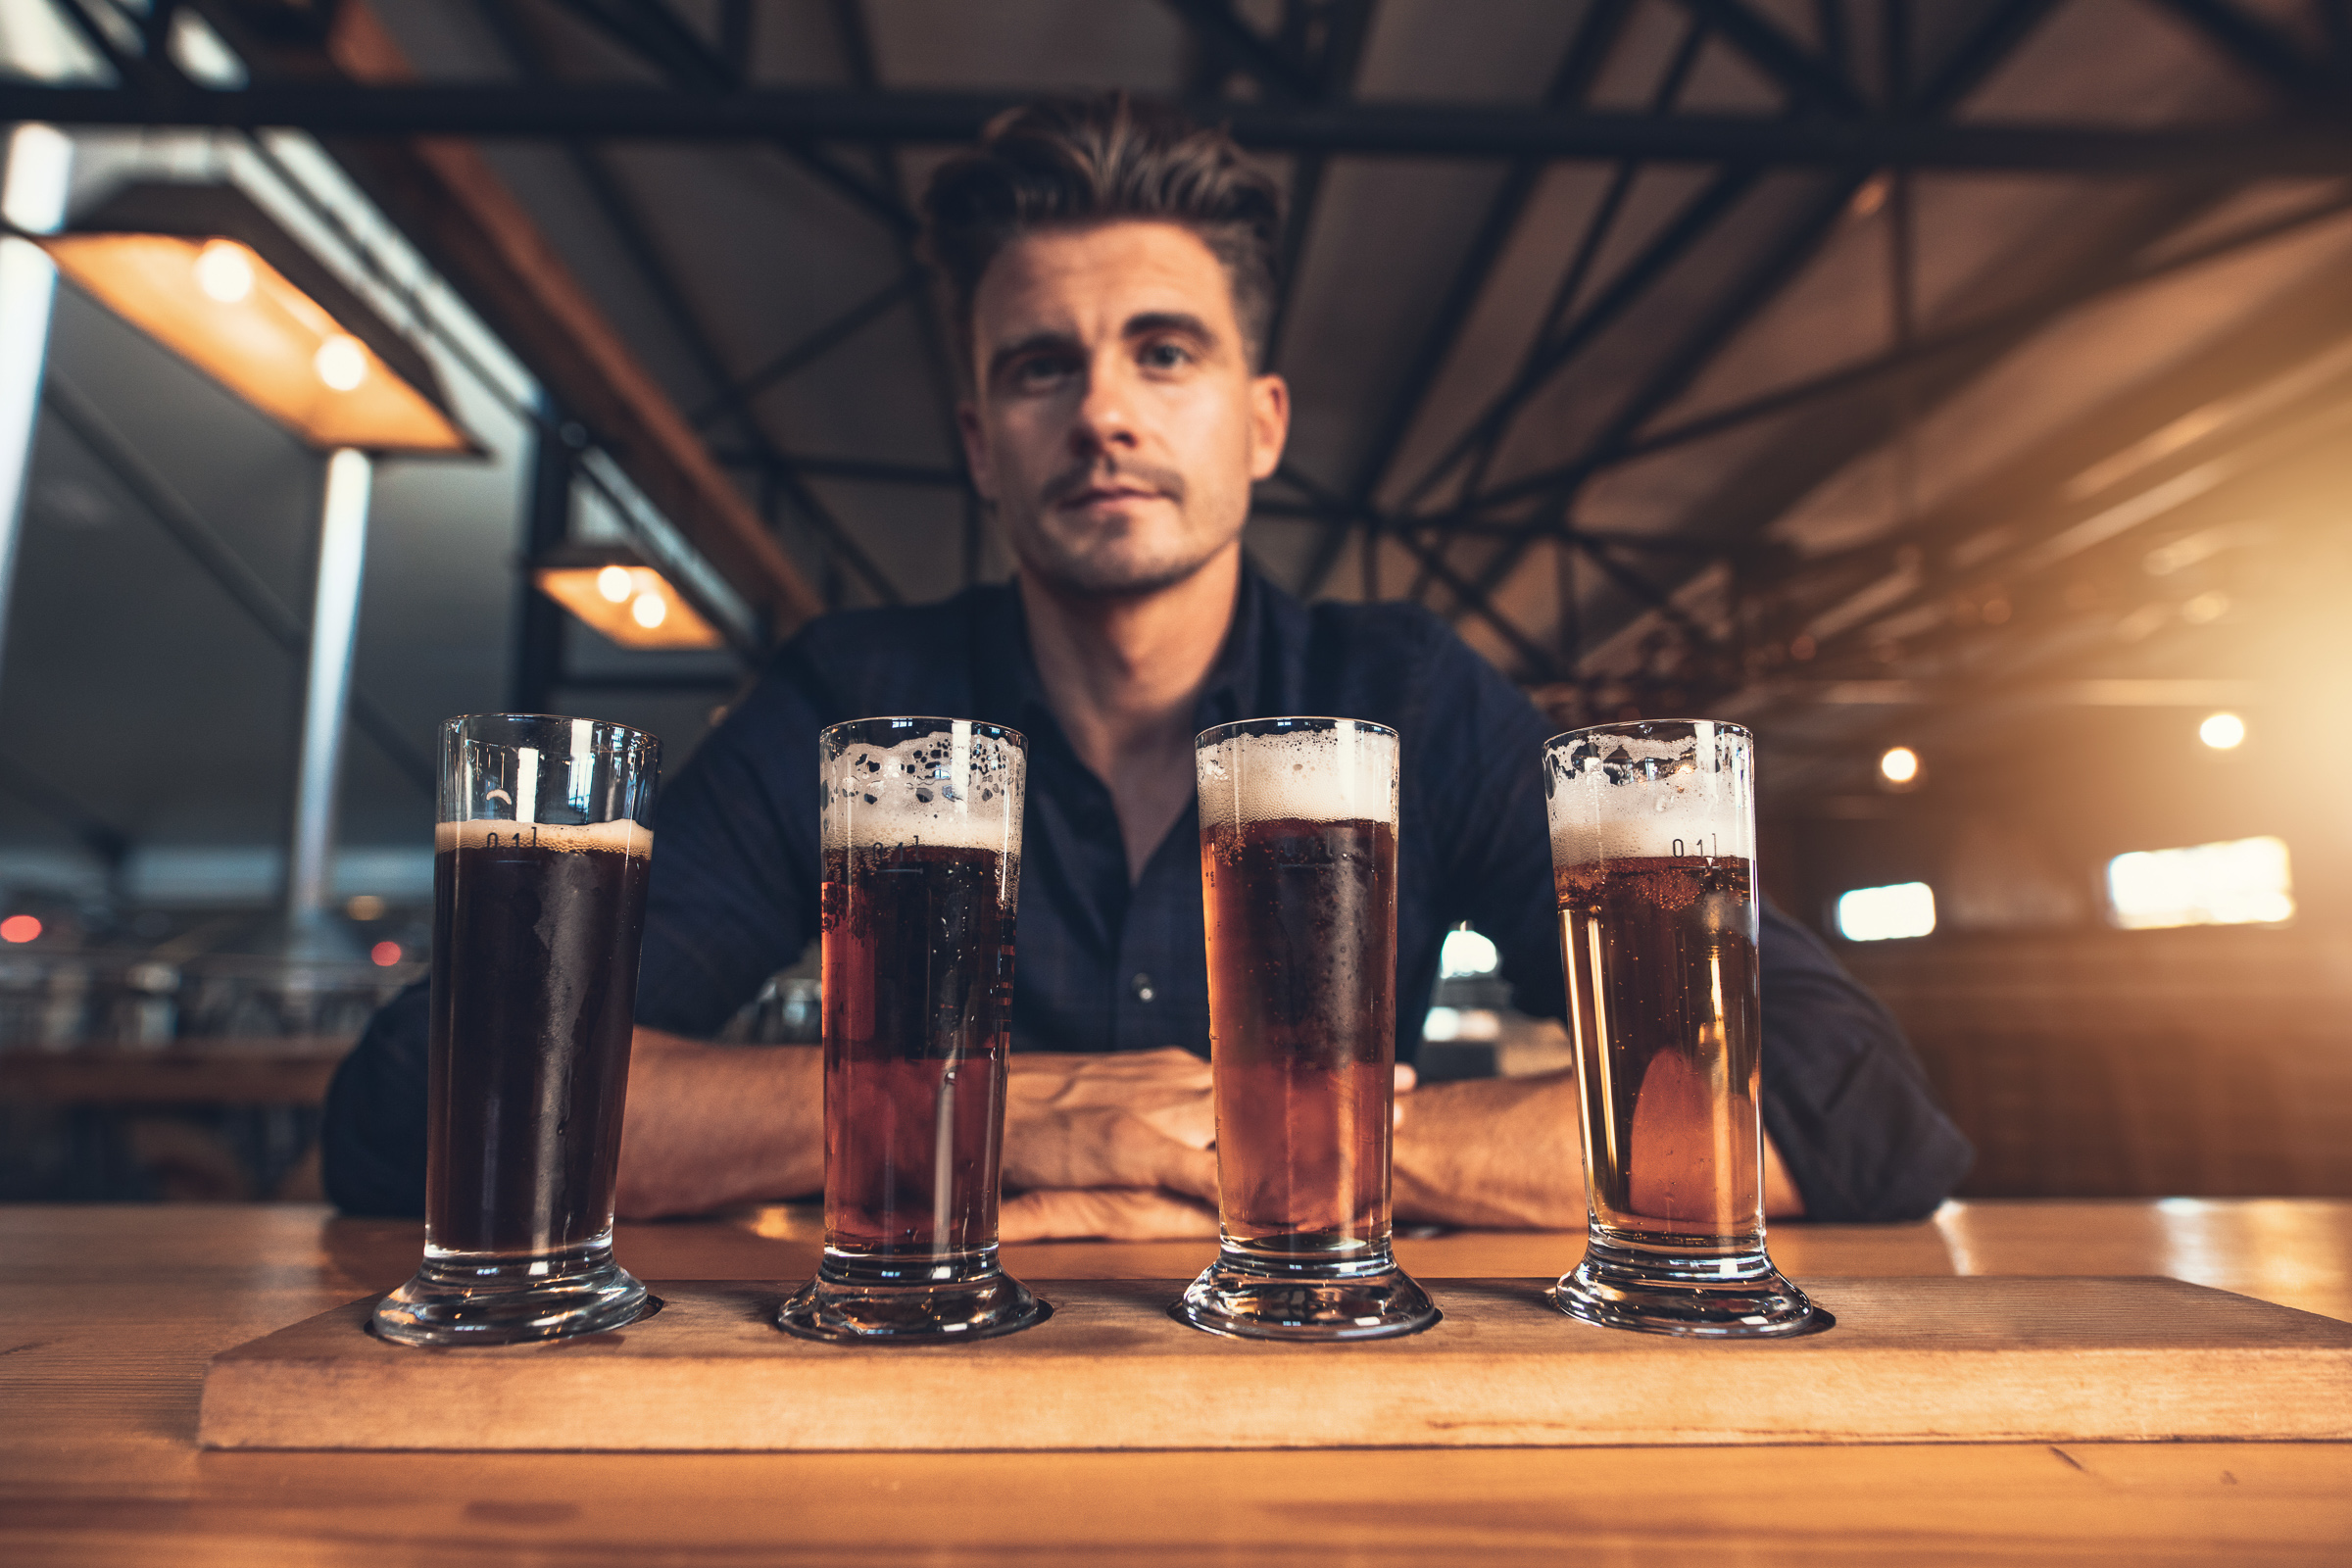 Young man tasting four different varieties of craft beer on a wooden table at brewery. Master brewer with four different types of beers at bar table.